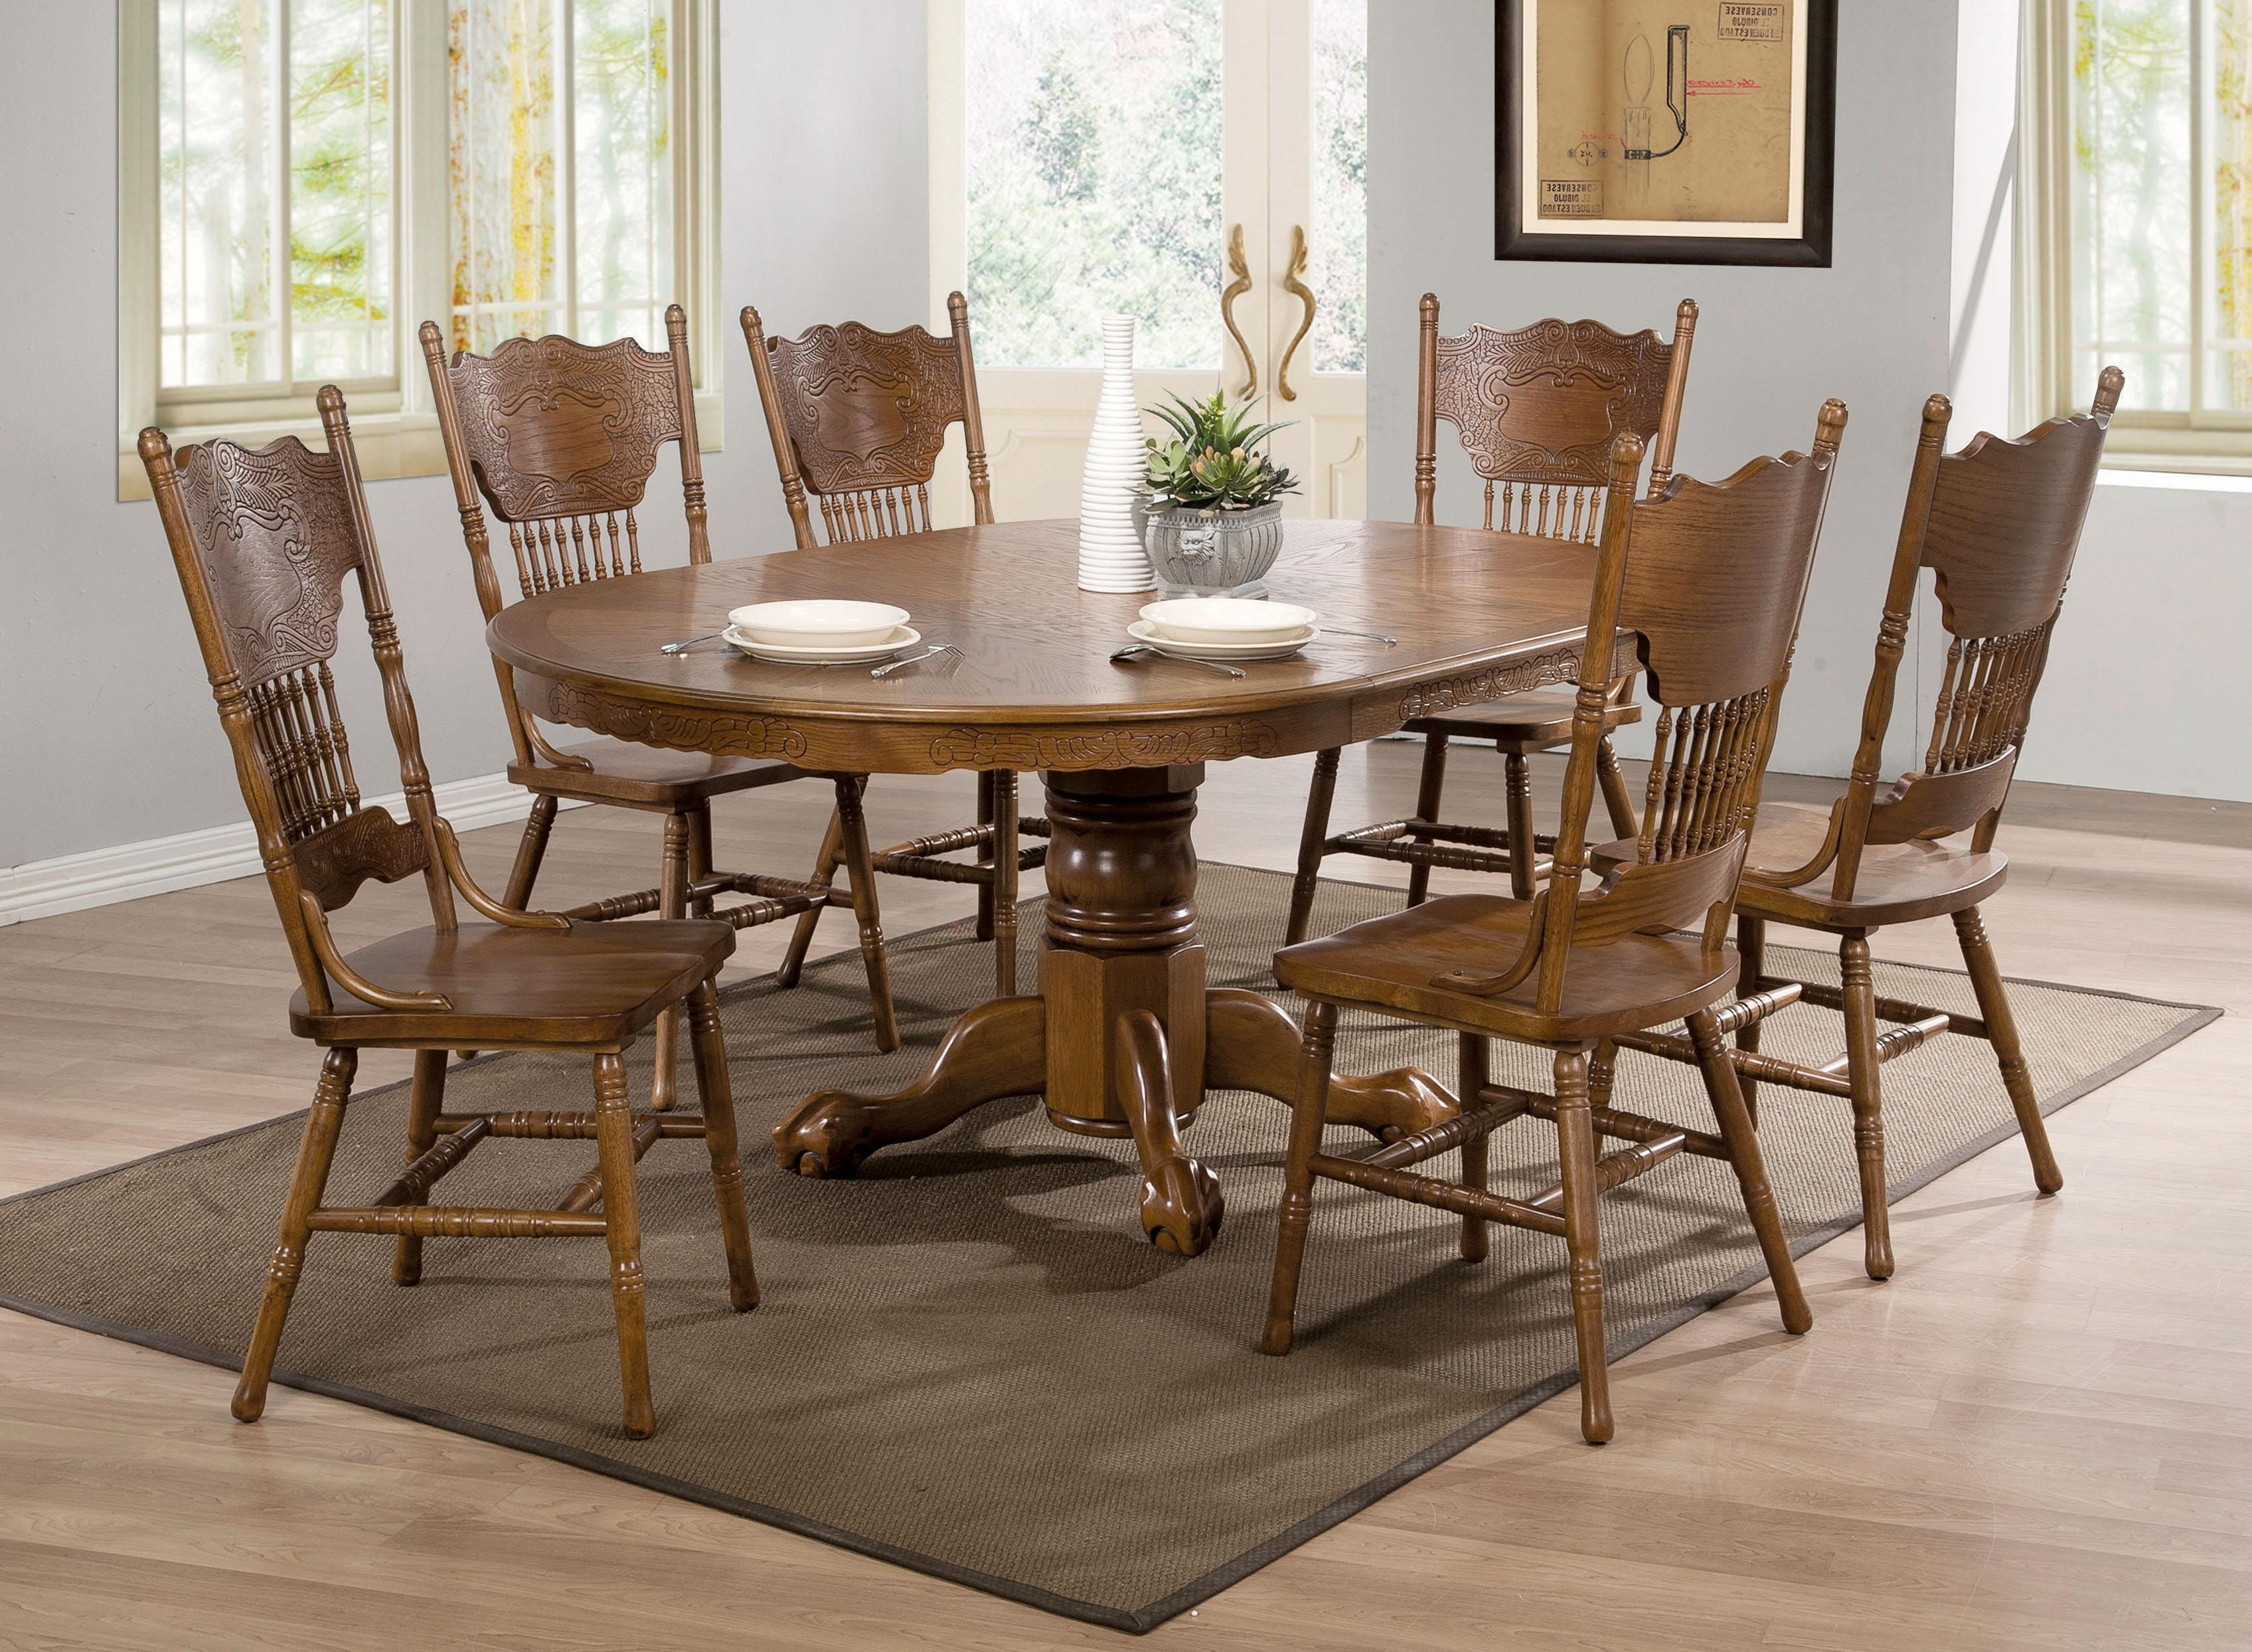 2018 Cheap Oak Dining Sets Inside 27 Beautiful Solid Oak Dining Tables And Chairs – Welovedandelion (View 2 of 25)